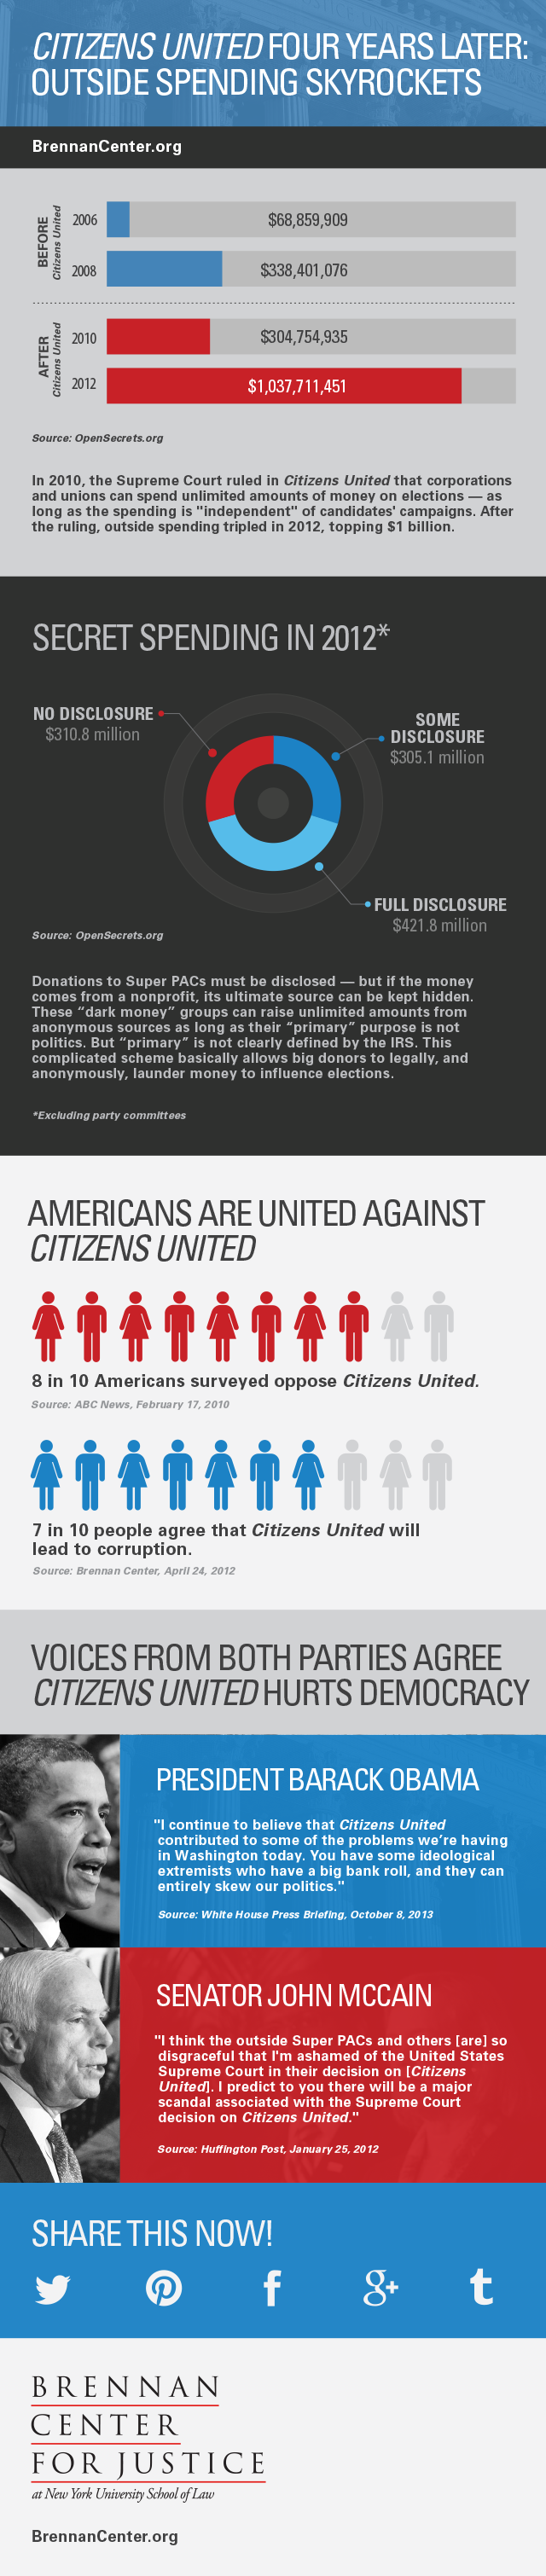 Infographic of the effects of Citizens United